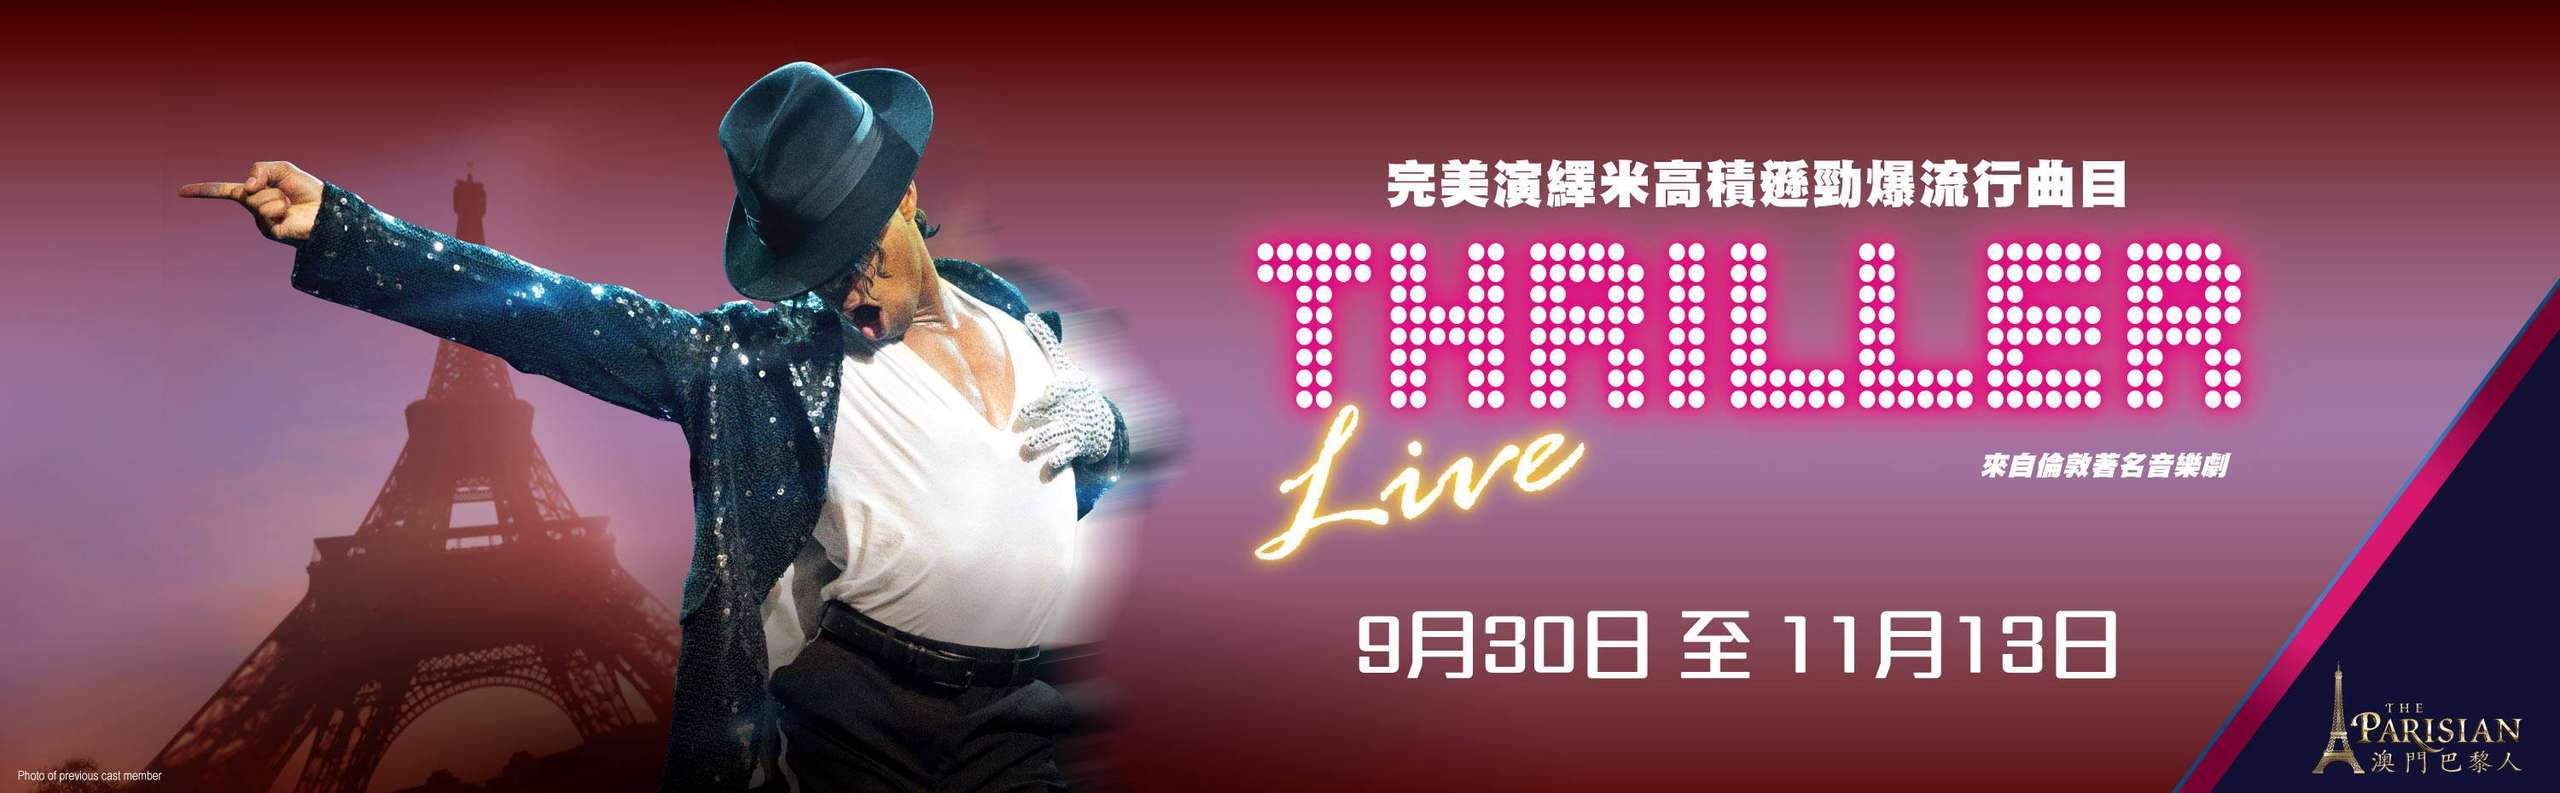 Thriller Live at the Parisian Macao